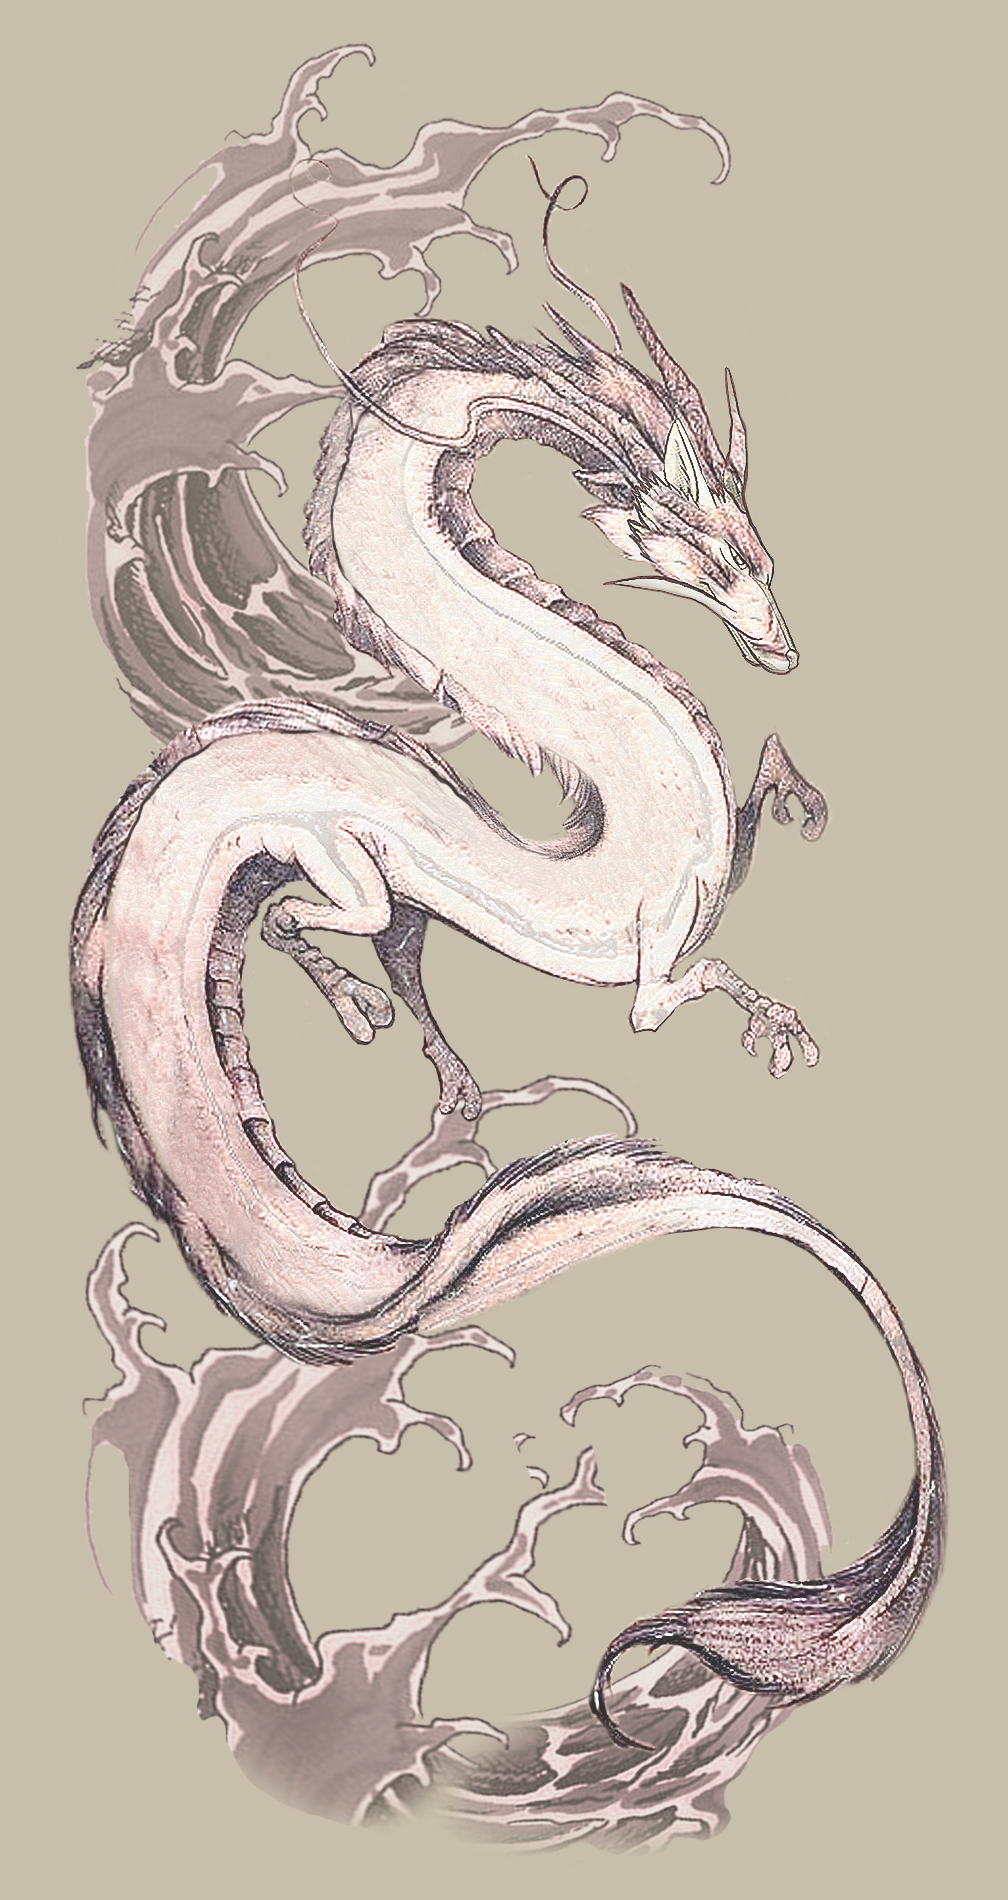 Dragon Haku From Spirited Away 5 Tattoo Designs For A Business In United States